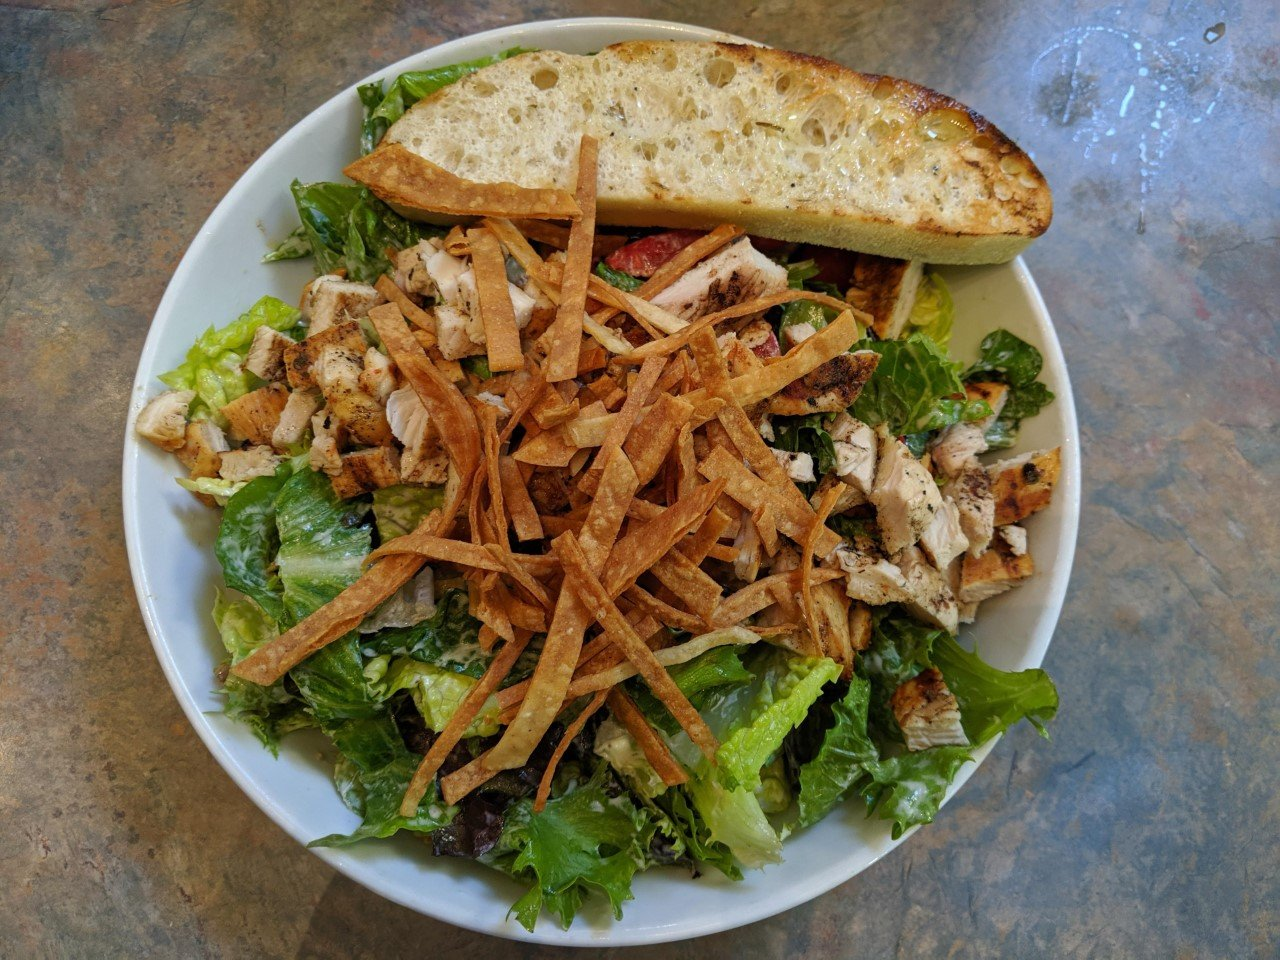 Chicken salad at the Standard Pour, Sonora